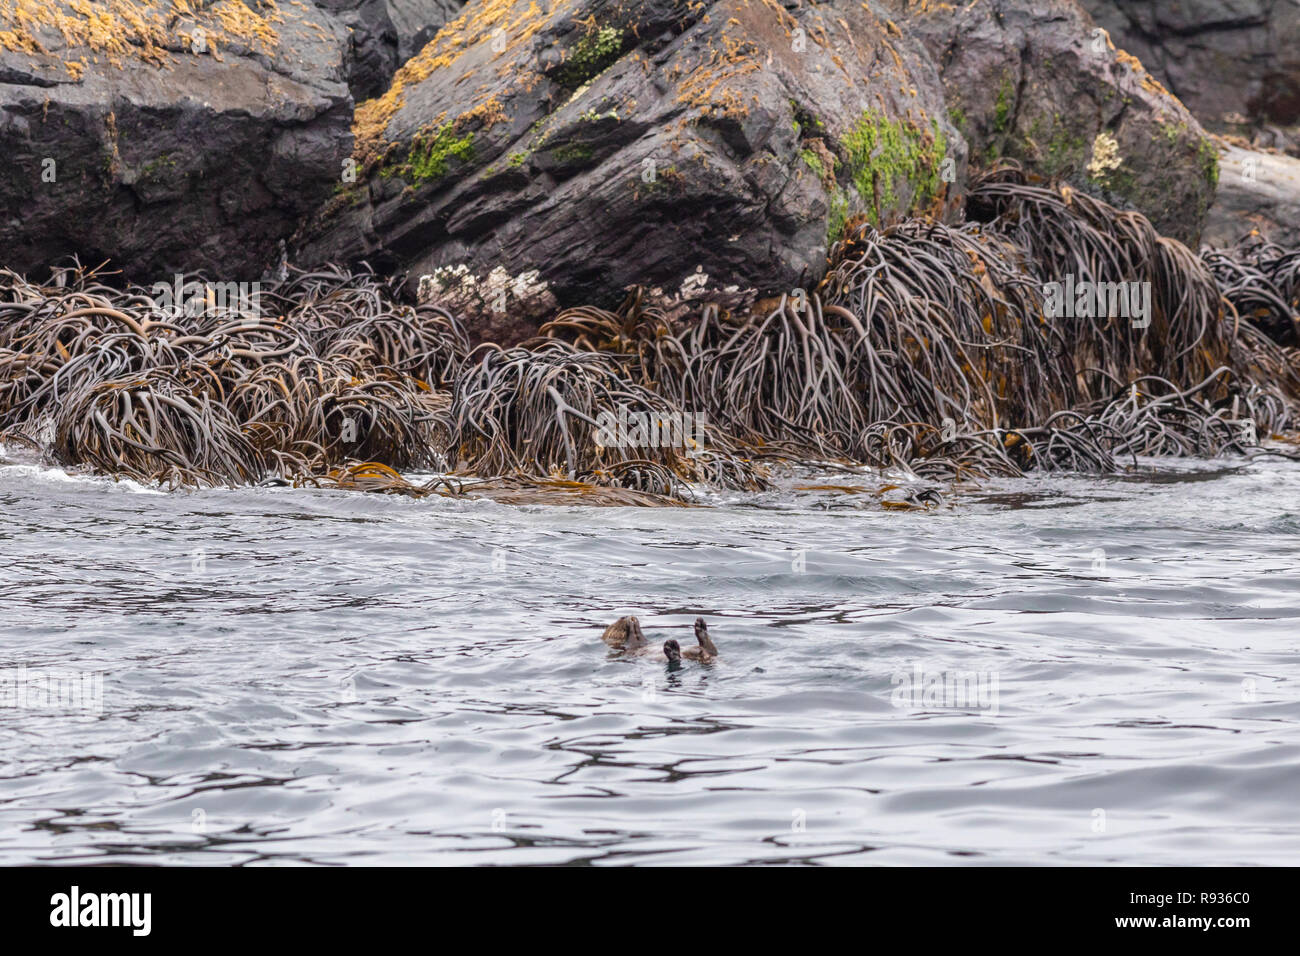 Chanaral Island in Atacama Desert, Chile, is an amazing place for seeing wildlife like the Mariner Otter. Seagull stealing food from the Marine Otter - Stock Image